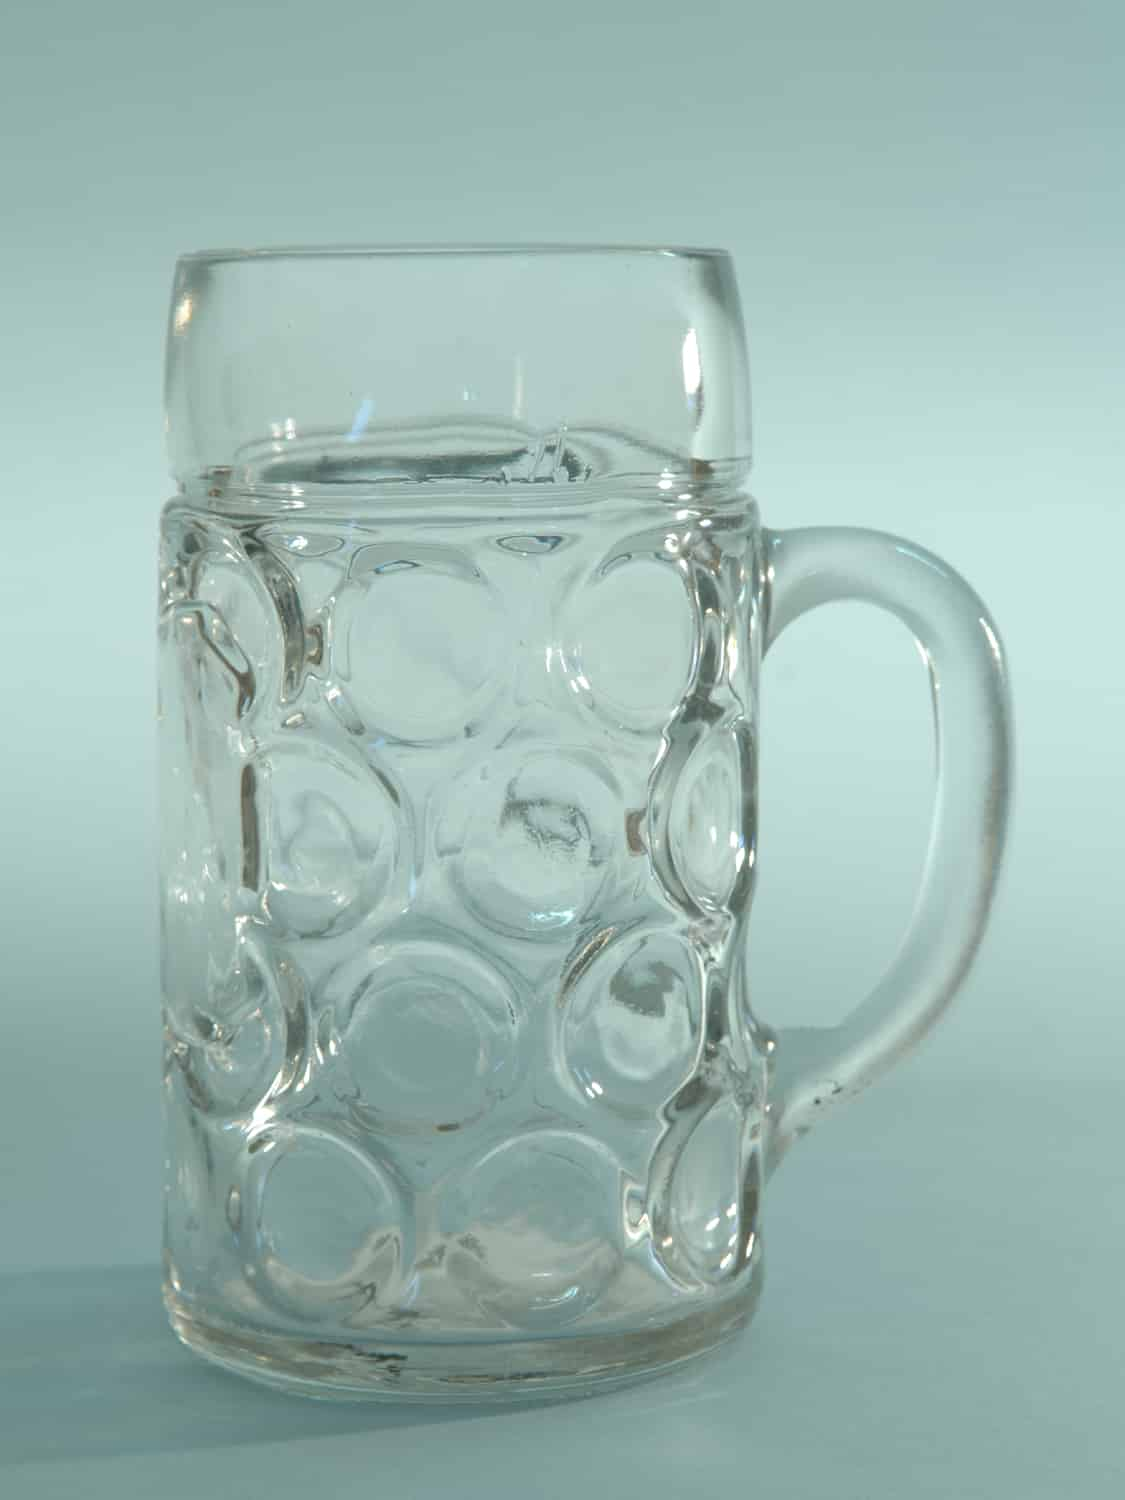 Awesome sugar glass beer stein. Height x width: 20.2 x ø 10.9 cm.